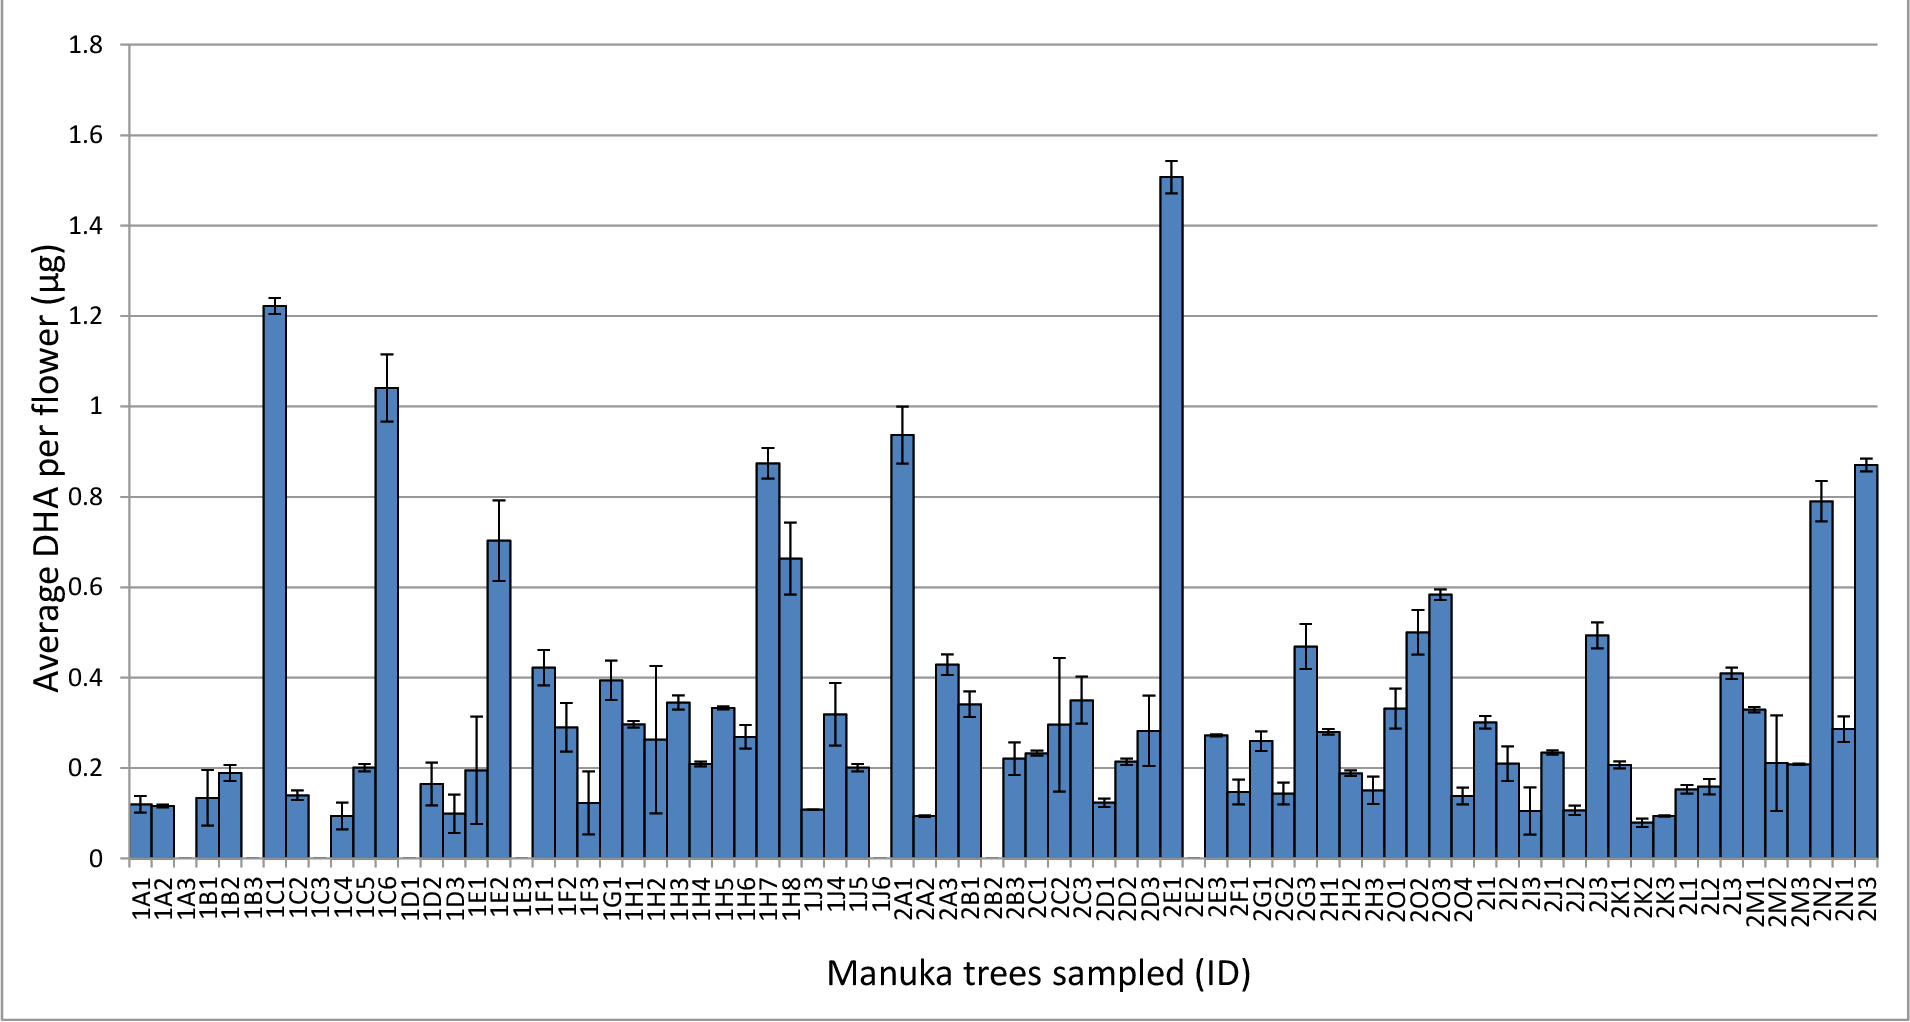 Figure 37: The average mass of DHA per f lower in µg for each of the 78 manuka trees sampled during the study sorted in order of collection. Tree ID codes are in the for mat trip number/site letter/tree number . Error bars show standard deviation of analyt ical replicates .